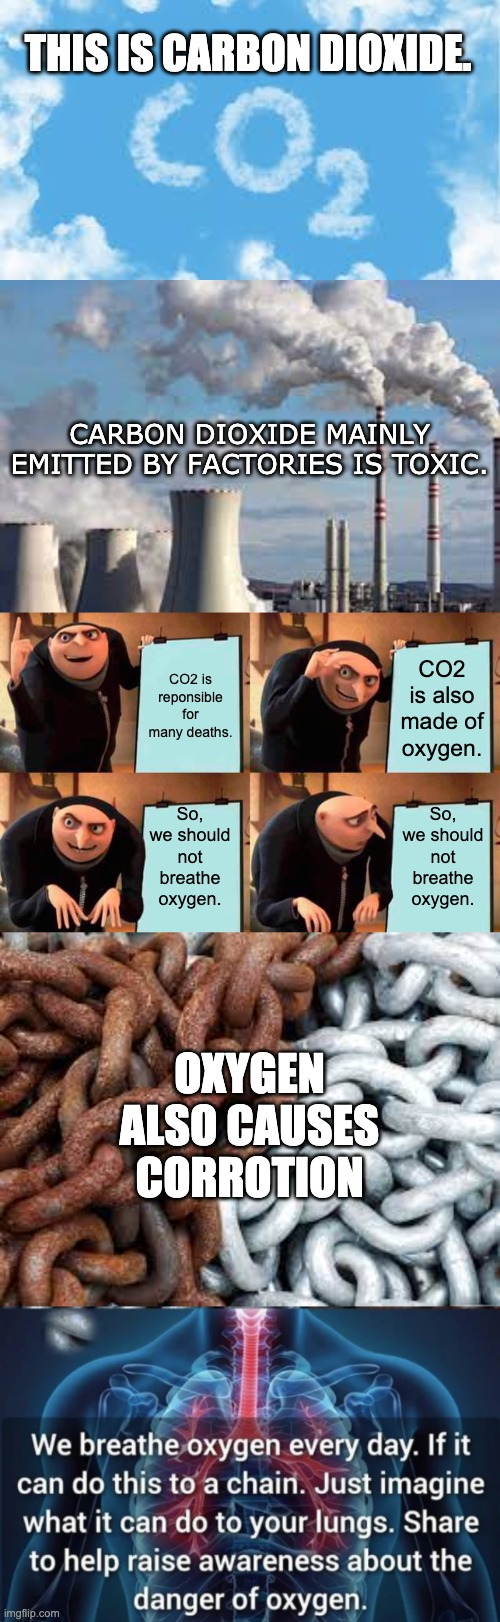 CO2 is made of oxygen. |  THIS IS CARBON DIOXIDE. CARBON DIOXIDE MAINLY EMITTED BY FACTORIES IS TOXIC. CO2 is reponsible for many deaths. CO2 is also made of oxygen. So, we should not breathe oxygen. So, we should not breathe oxygen. OXYGEN ALSO CAUSES CORROTION | image tagged in memes,gru's plan,carbon,oxygen | made w/ Imgflip meme maker